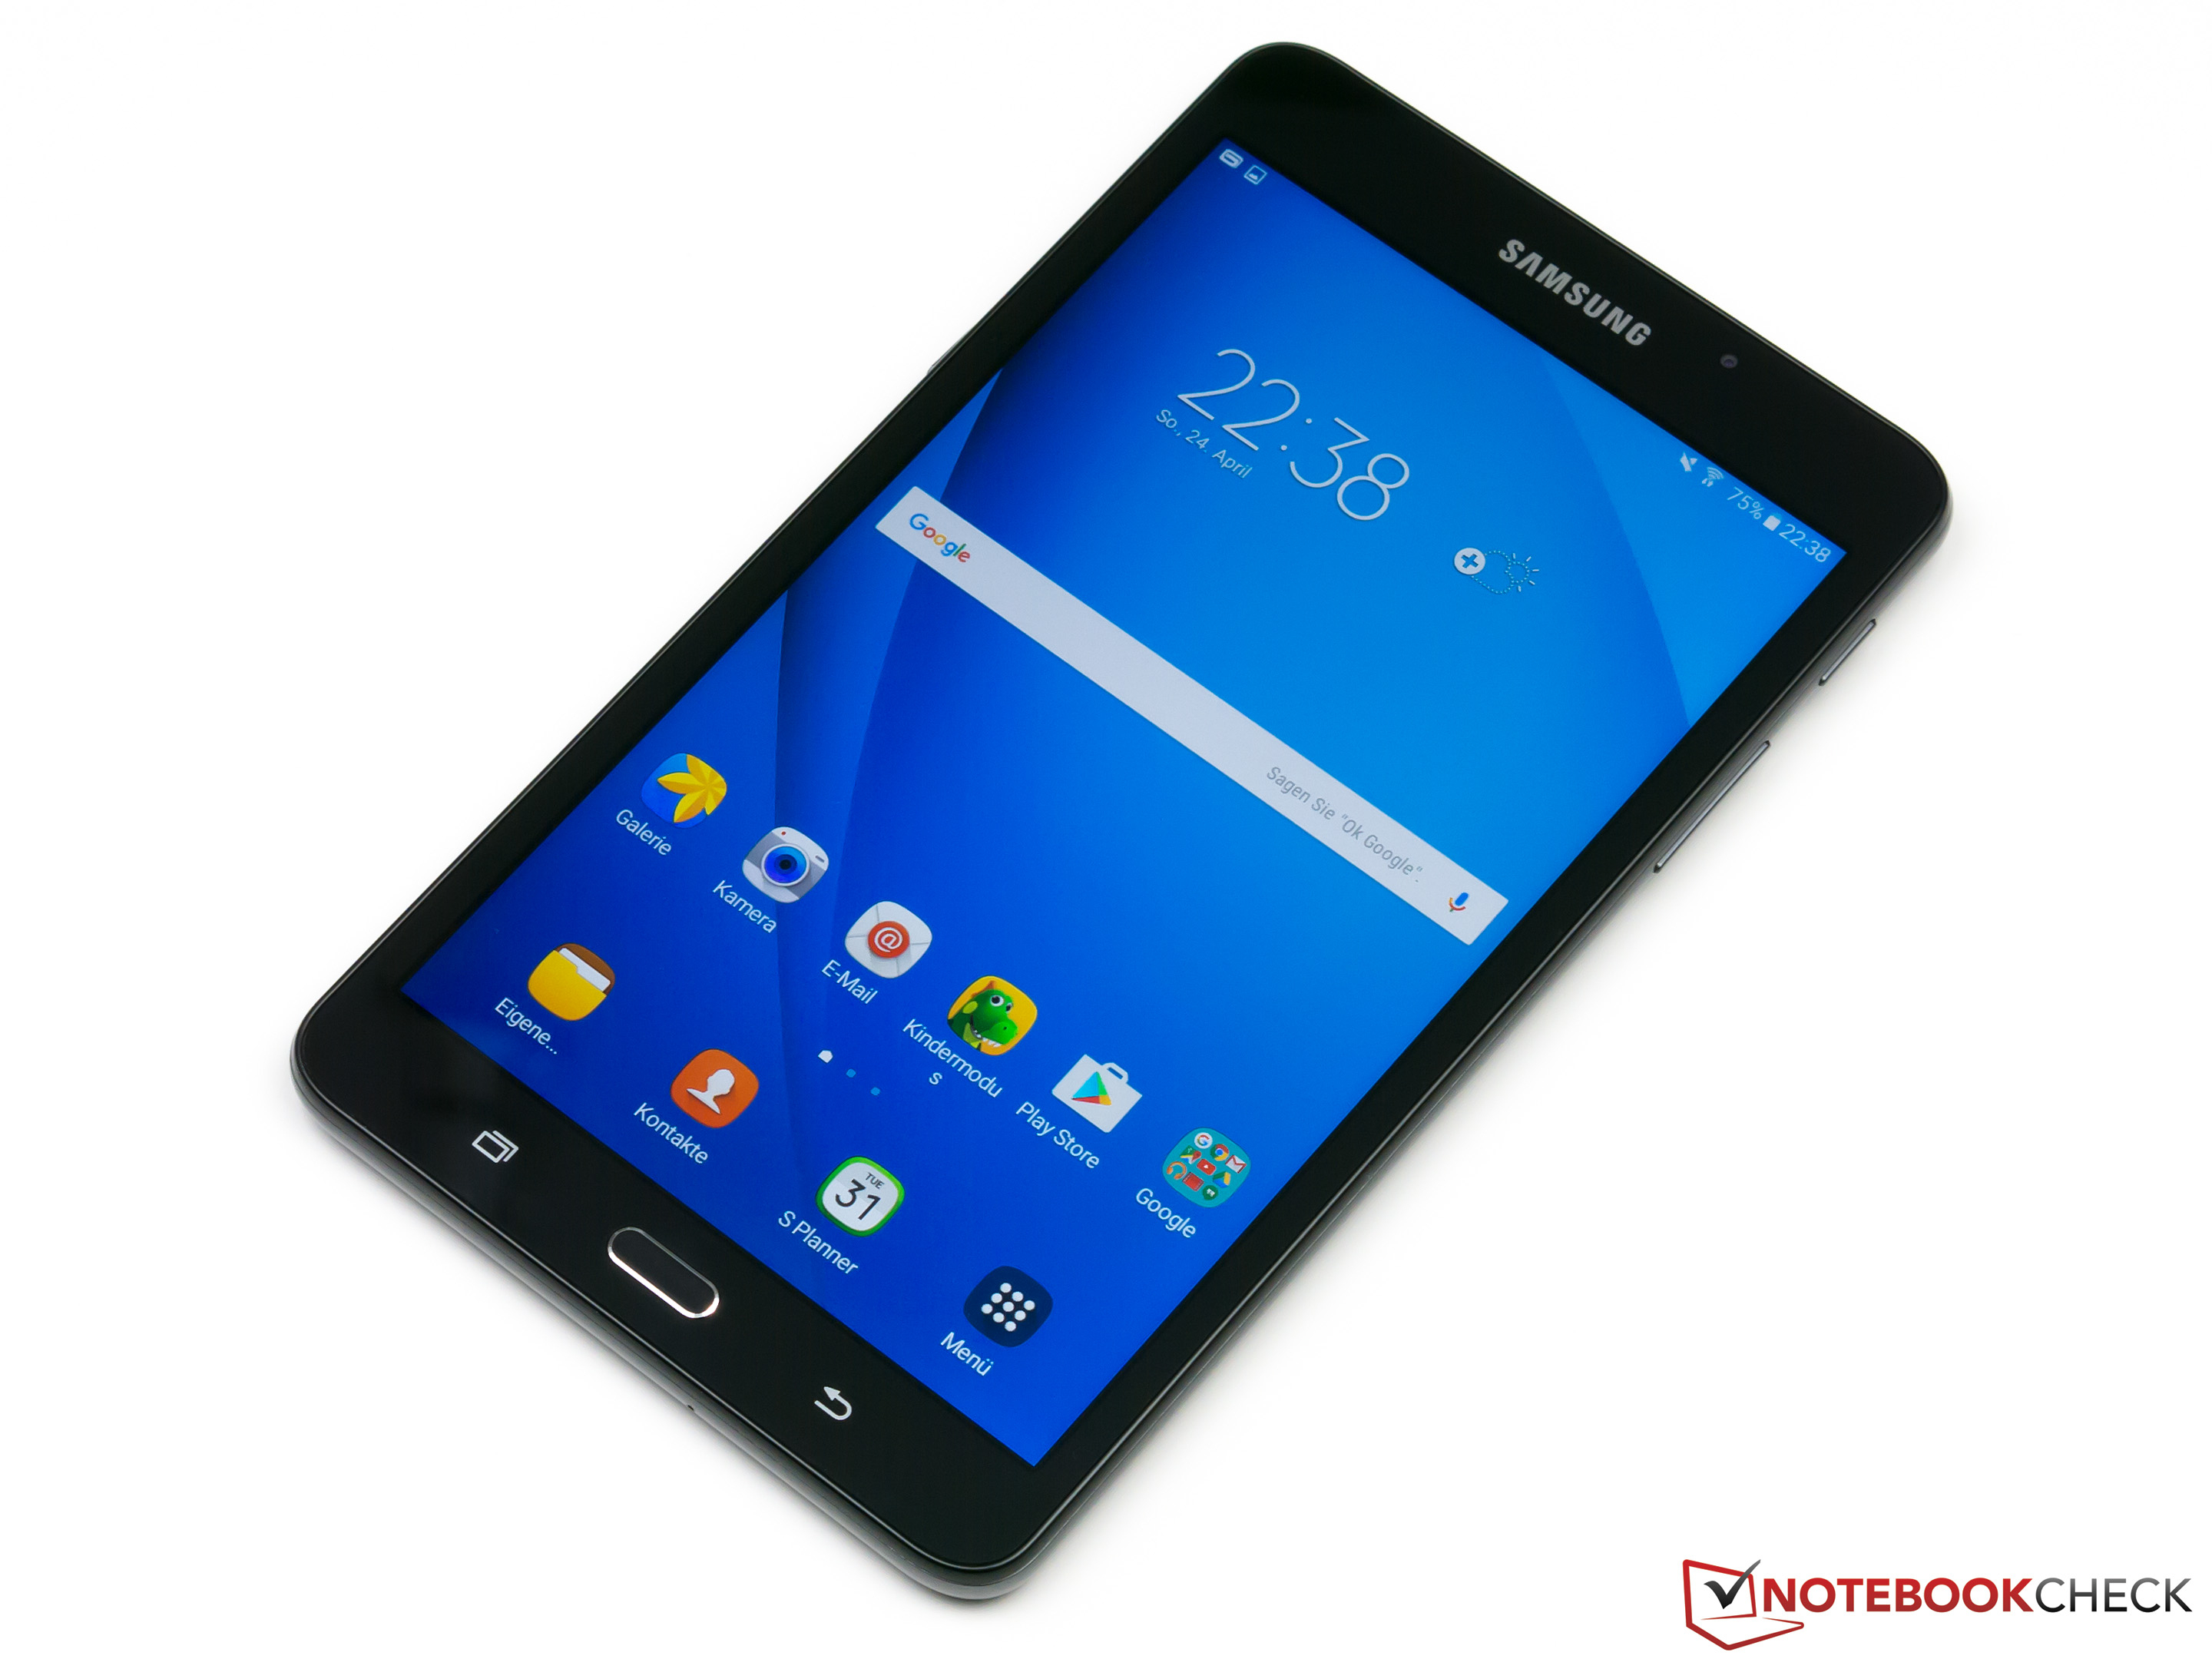 Samsung Galaxy Tab A 7.0 (2016) Tablet Review - Notebookcheck - Wiring Diagram Samsung Galaxy Tab A T350 Usb To Battery